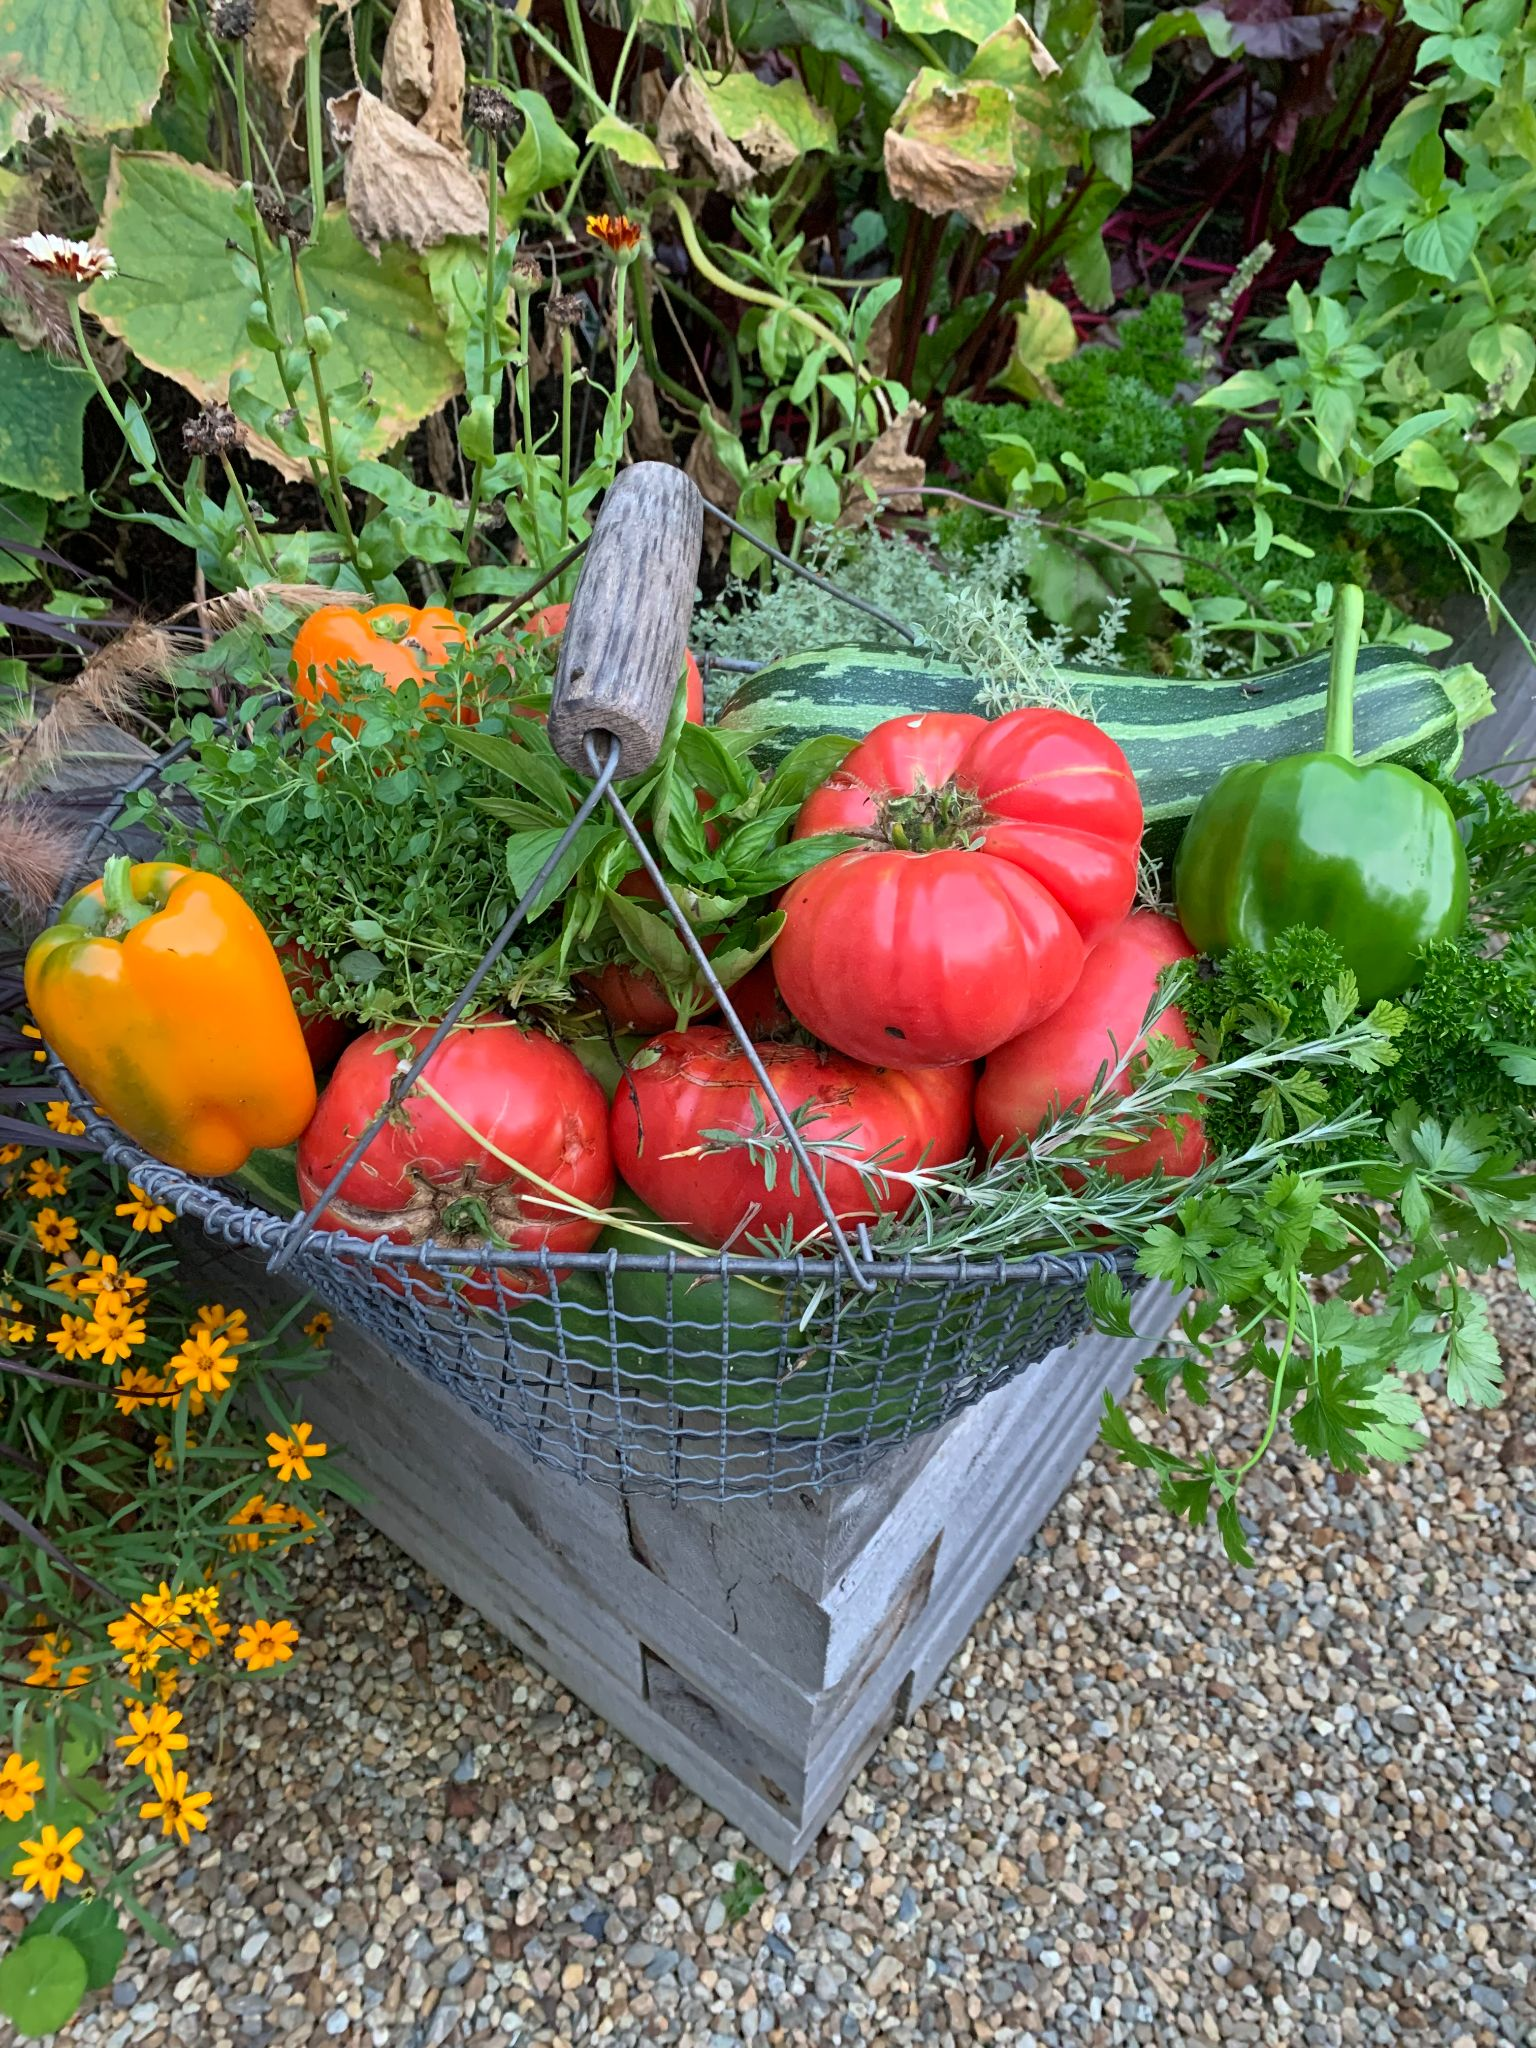 What is a CSA & How Does Community Support Help the Environment?